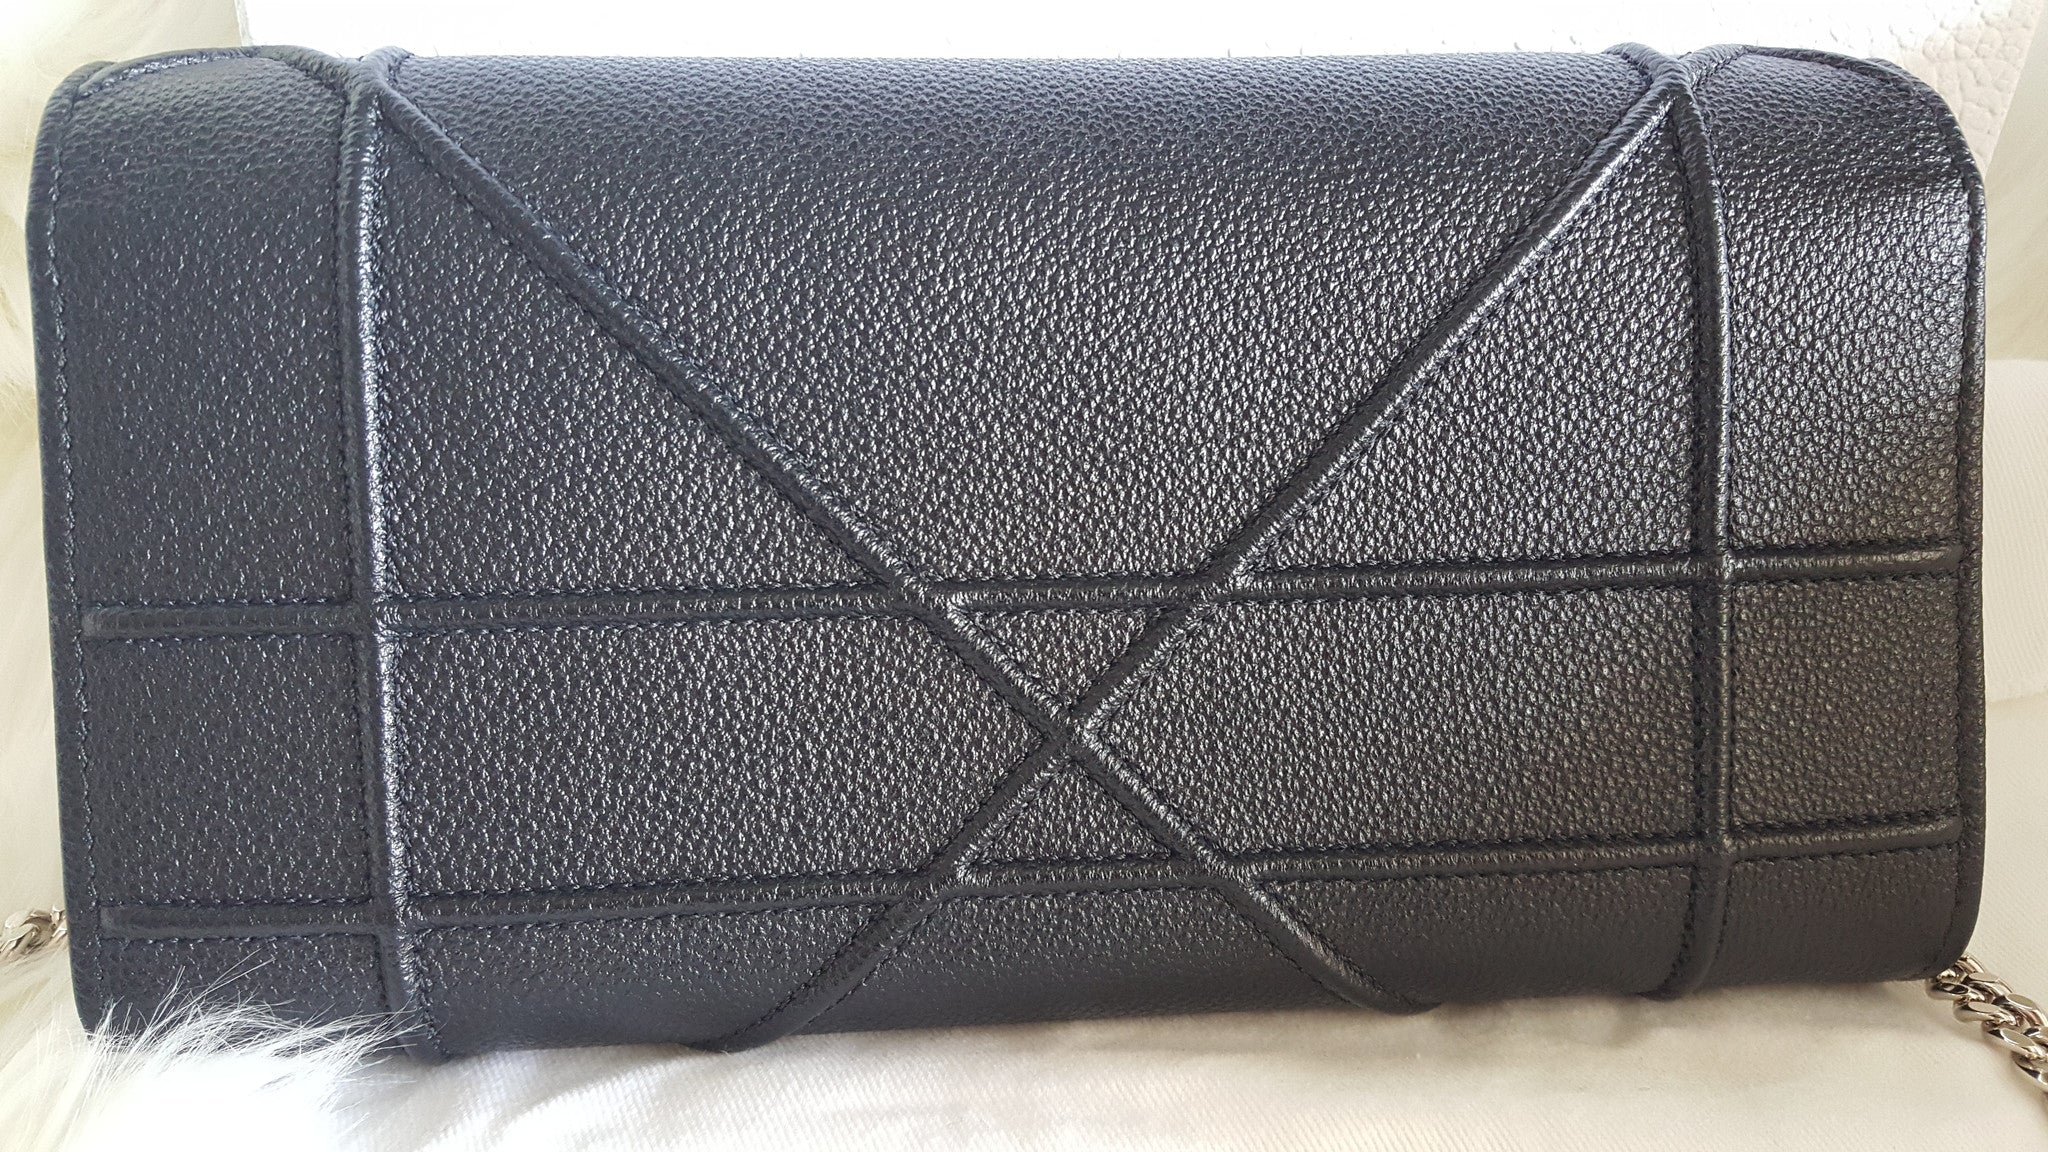 CHRISTIAN DIOR DIORAMA CROISIERE WALLET ON CHAIN